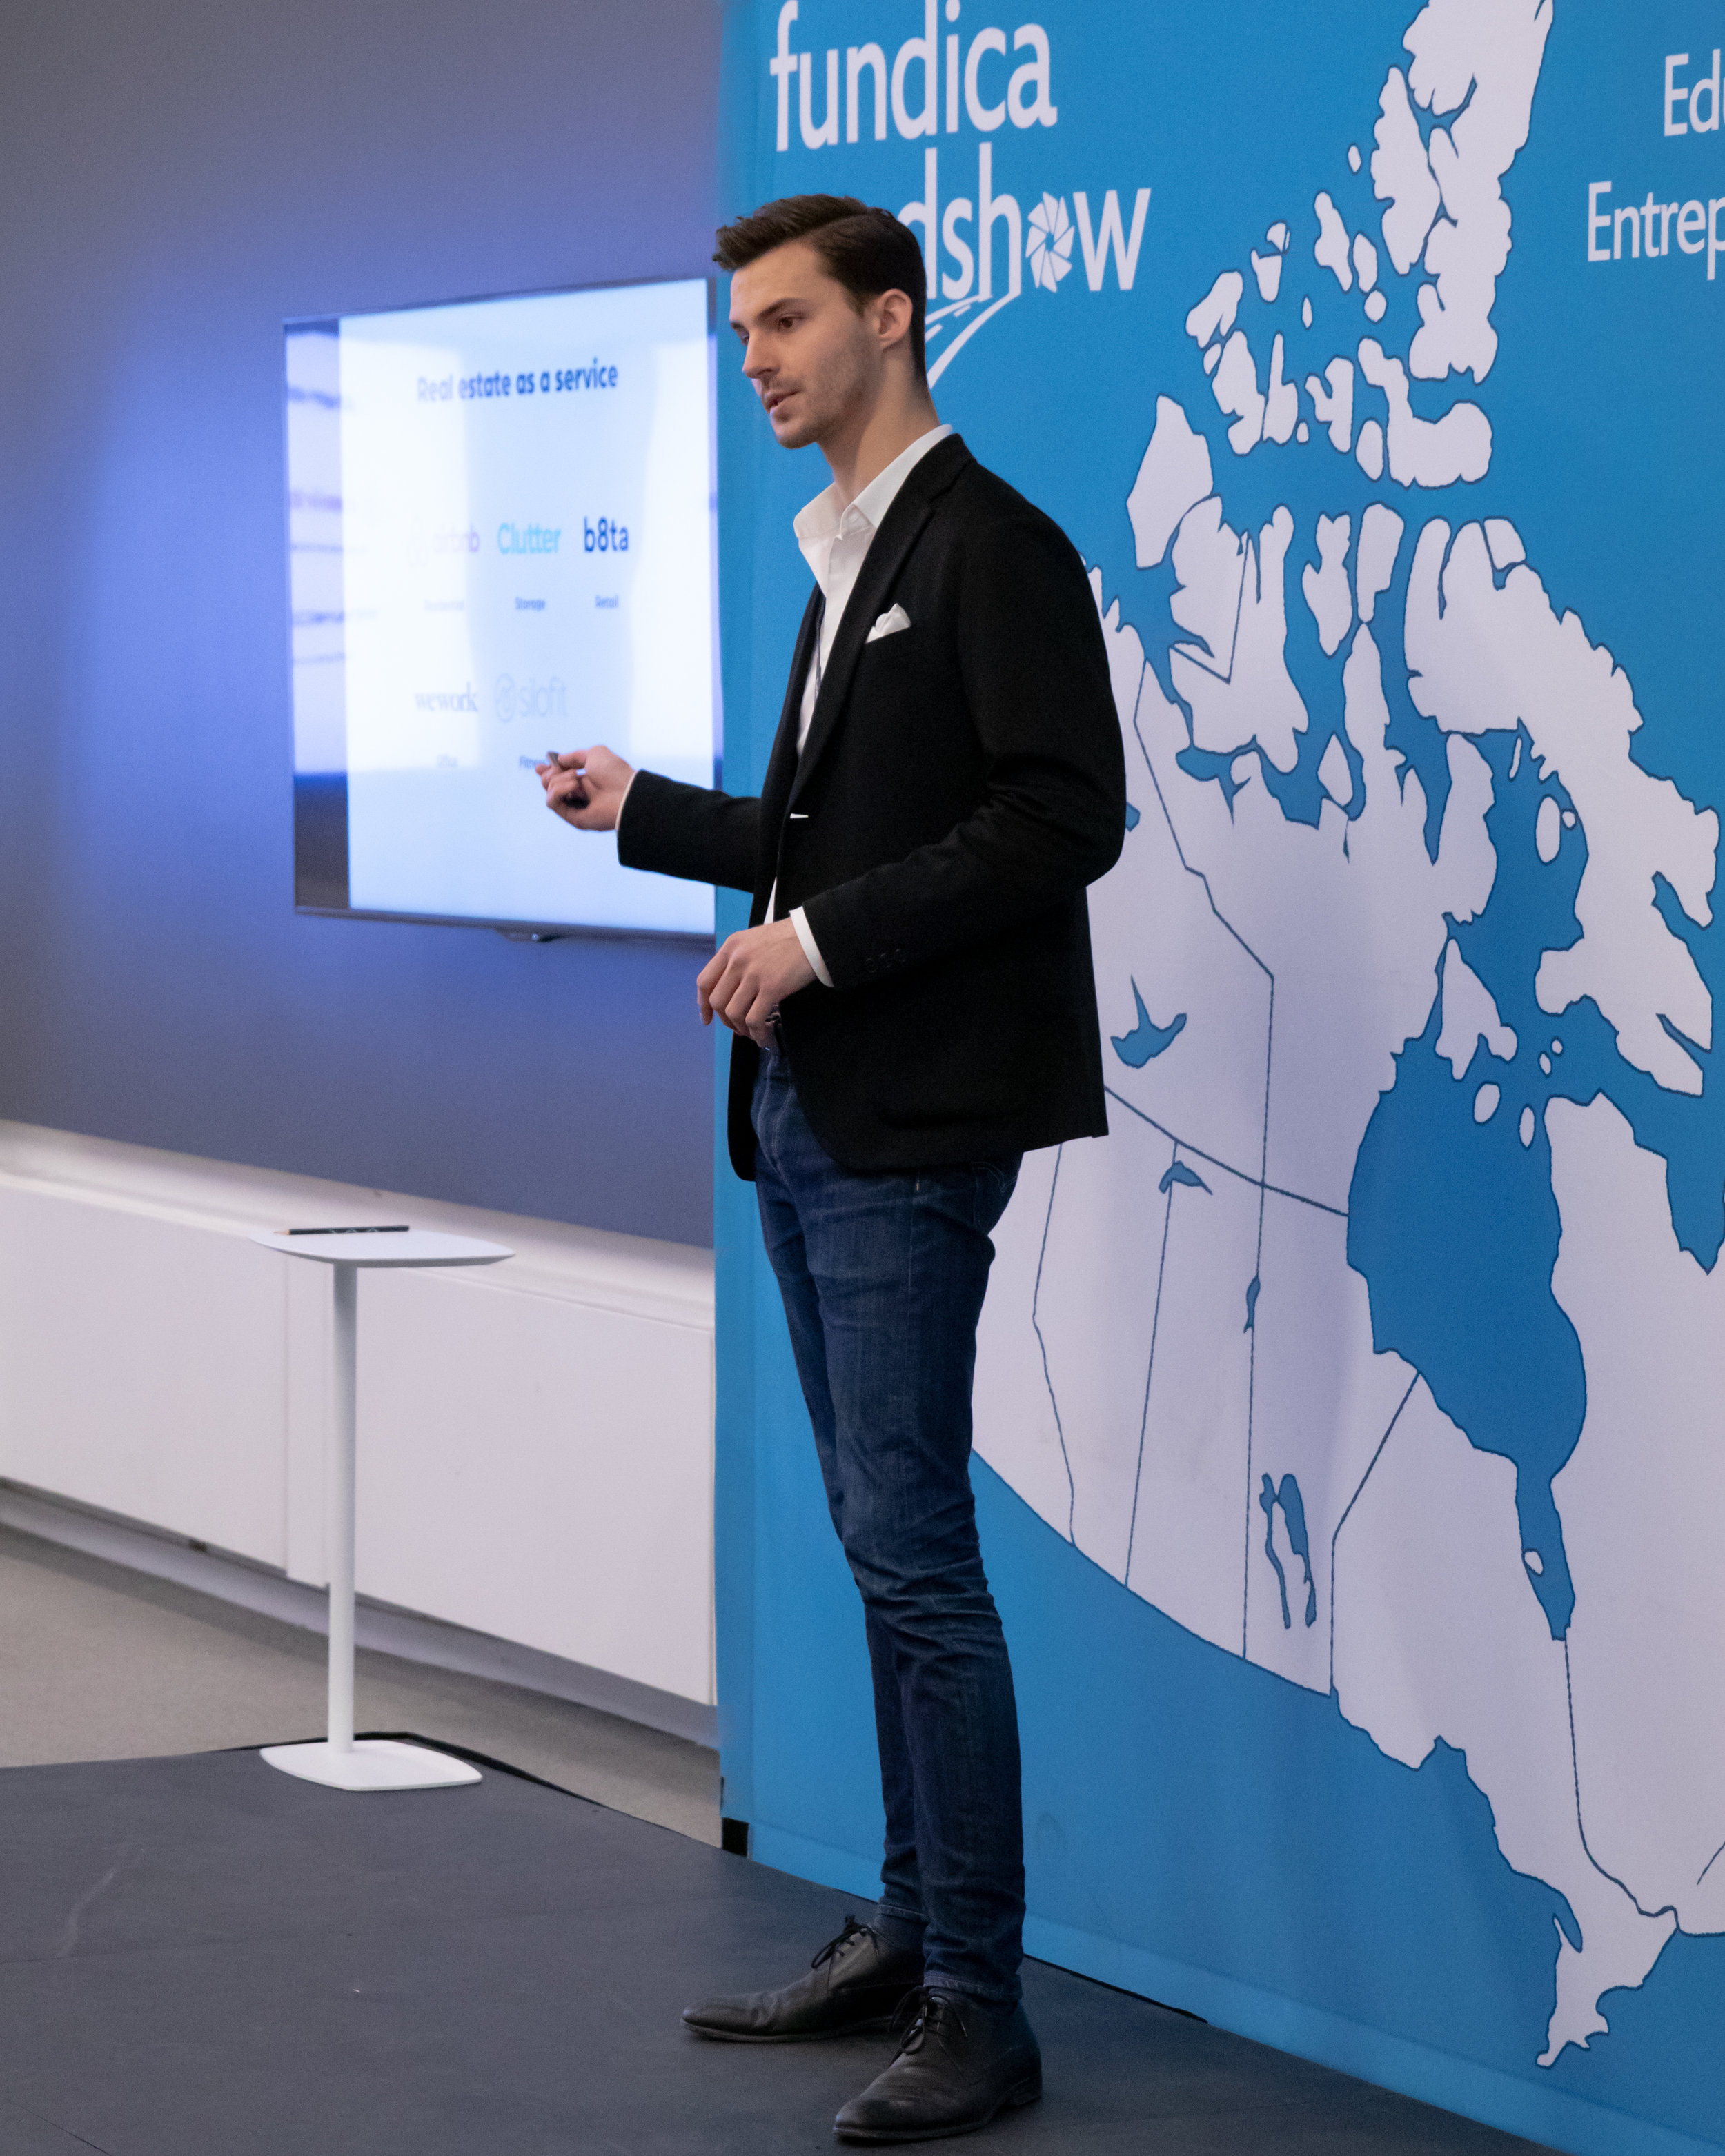 Silofit CEO and co-founder Wilfred Valenta pitching at the 2019 Fundica Roadshow in Montreal